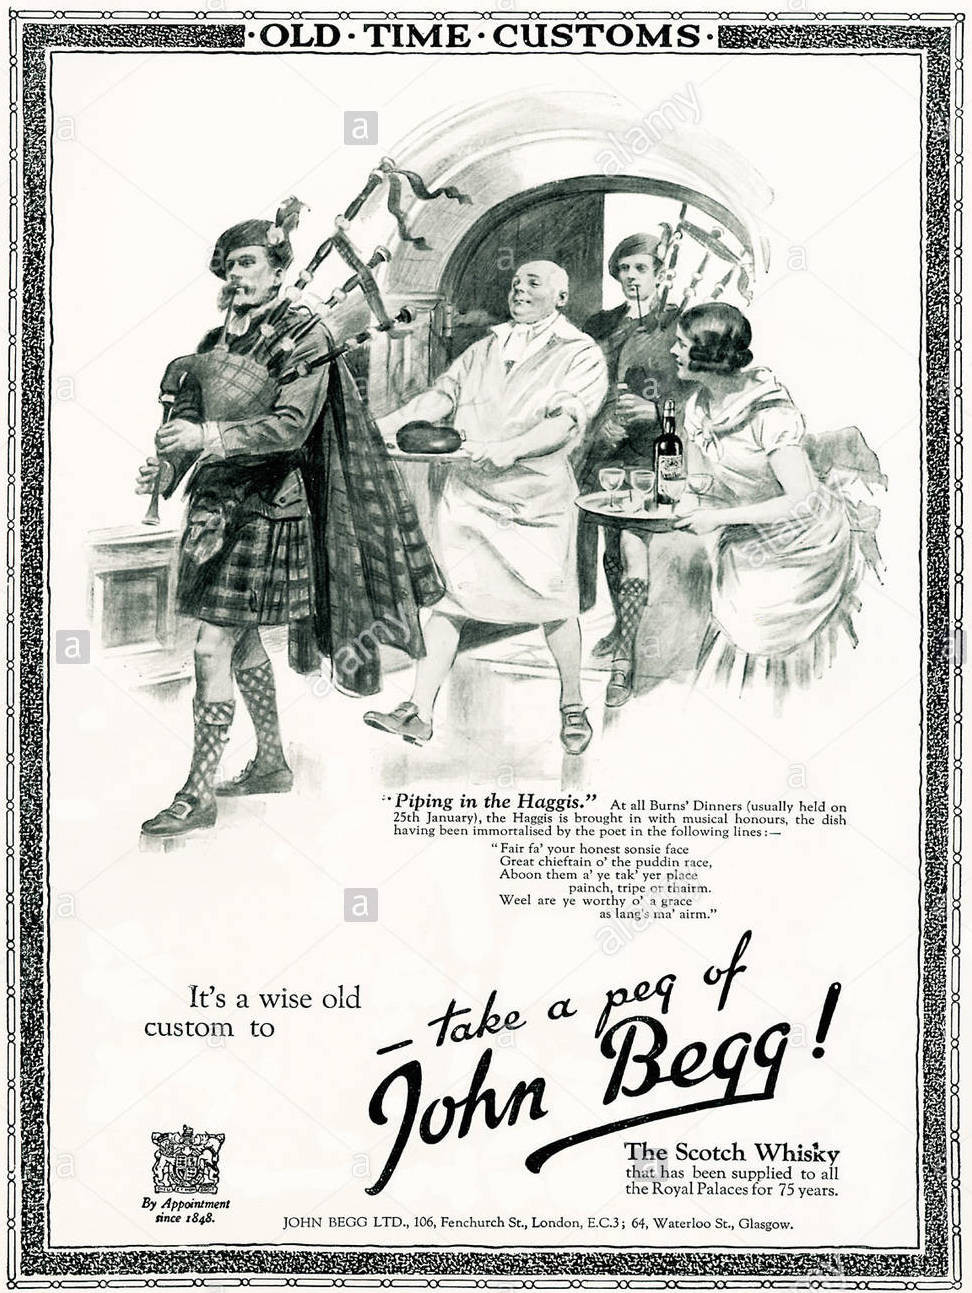 Piping In The Haggis John Begg Whisky 1920s advert for John Begg scotch